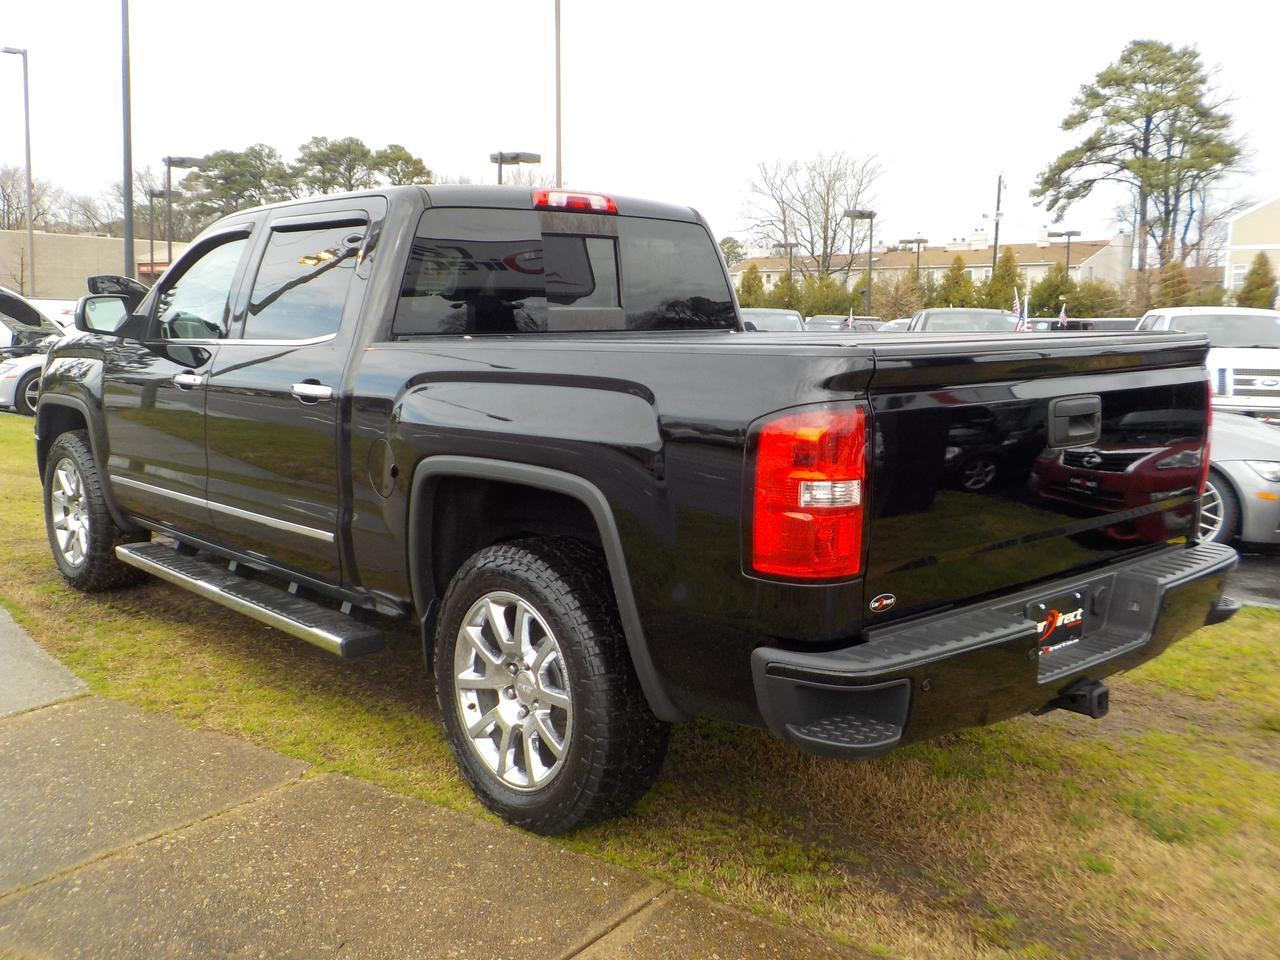 2014 GMC SIERRA 1500 DENALI 4X4, WARRANTY, NAVIGATION, HEATED AND COOLED SEATING, DAYTIME RUNNING LIGHTS, TOW! Virginia Beach VA